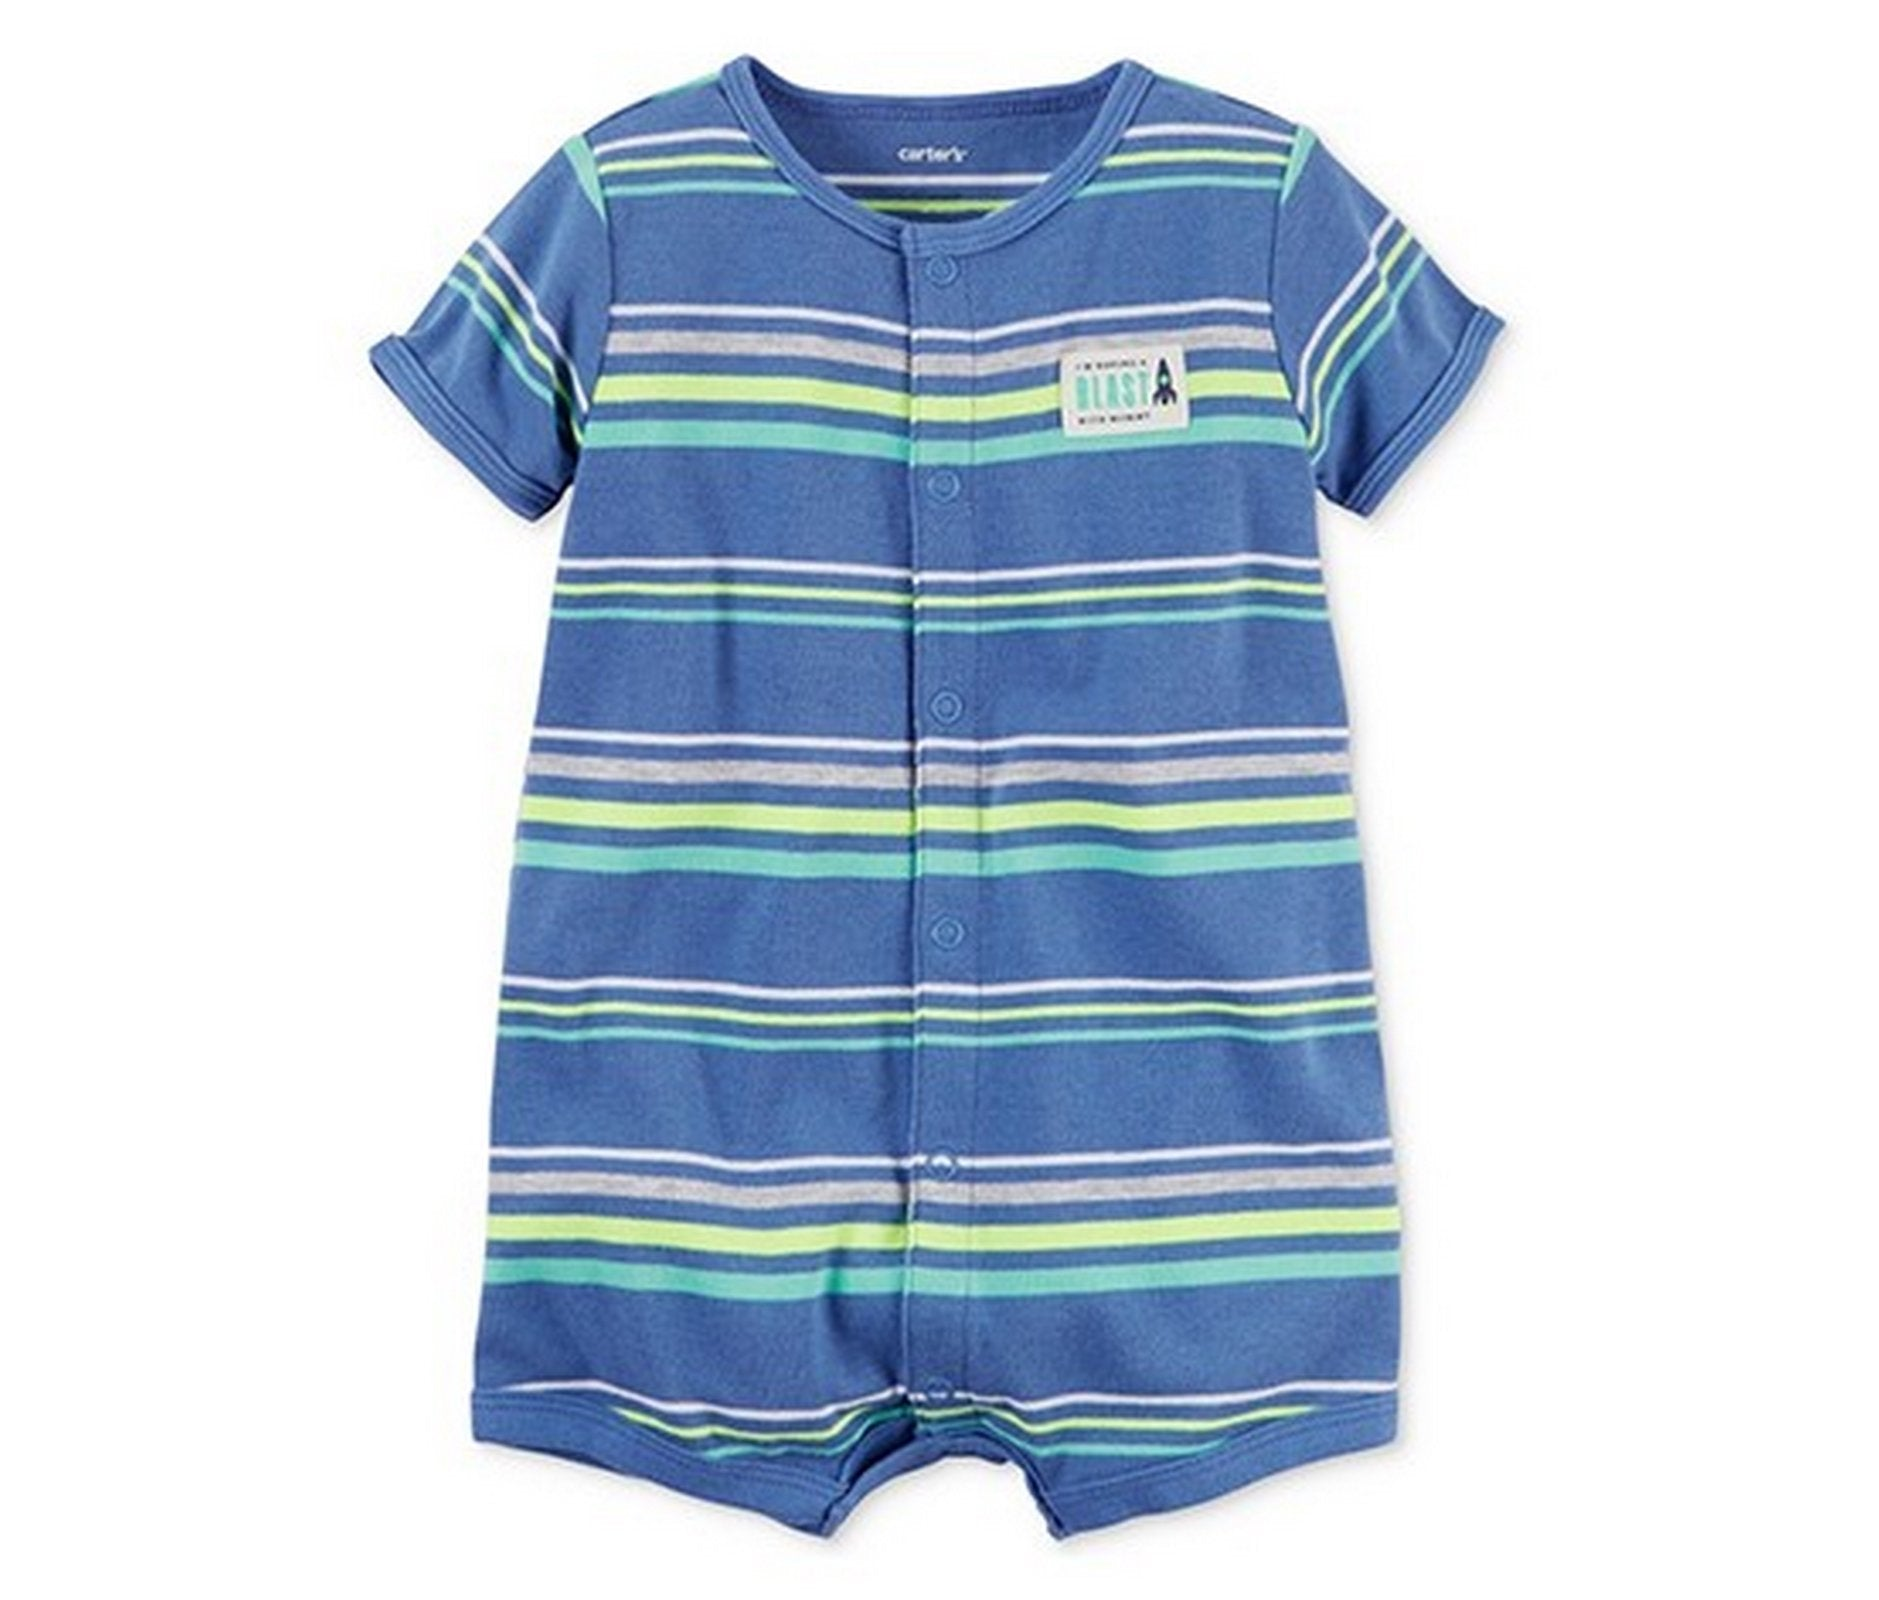 Carter's Snap-Up Romper  Modelo 118H081